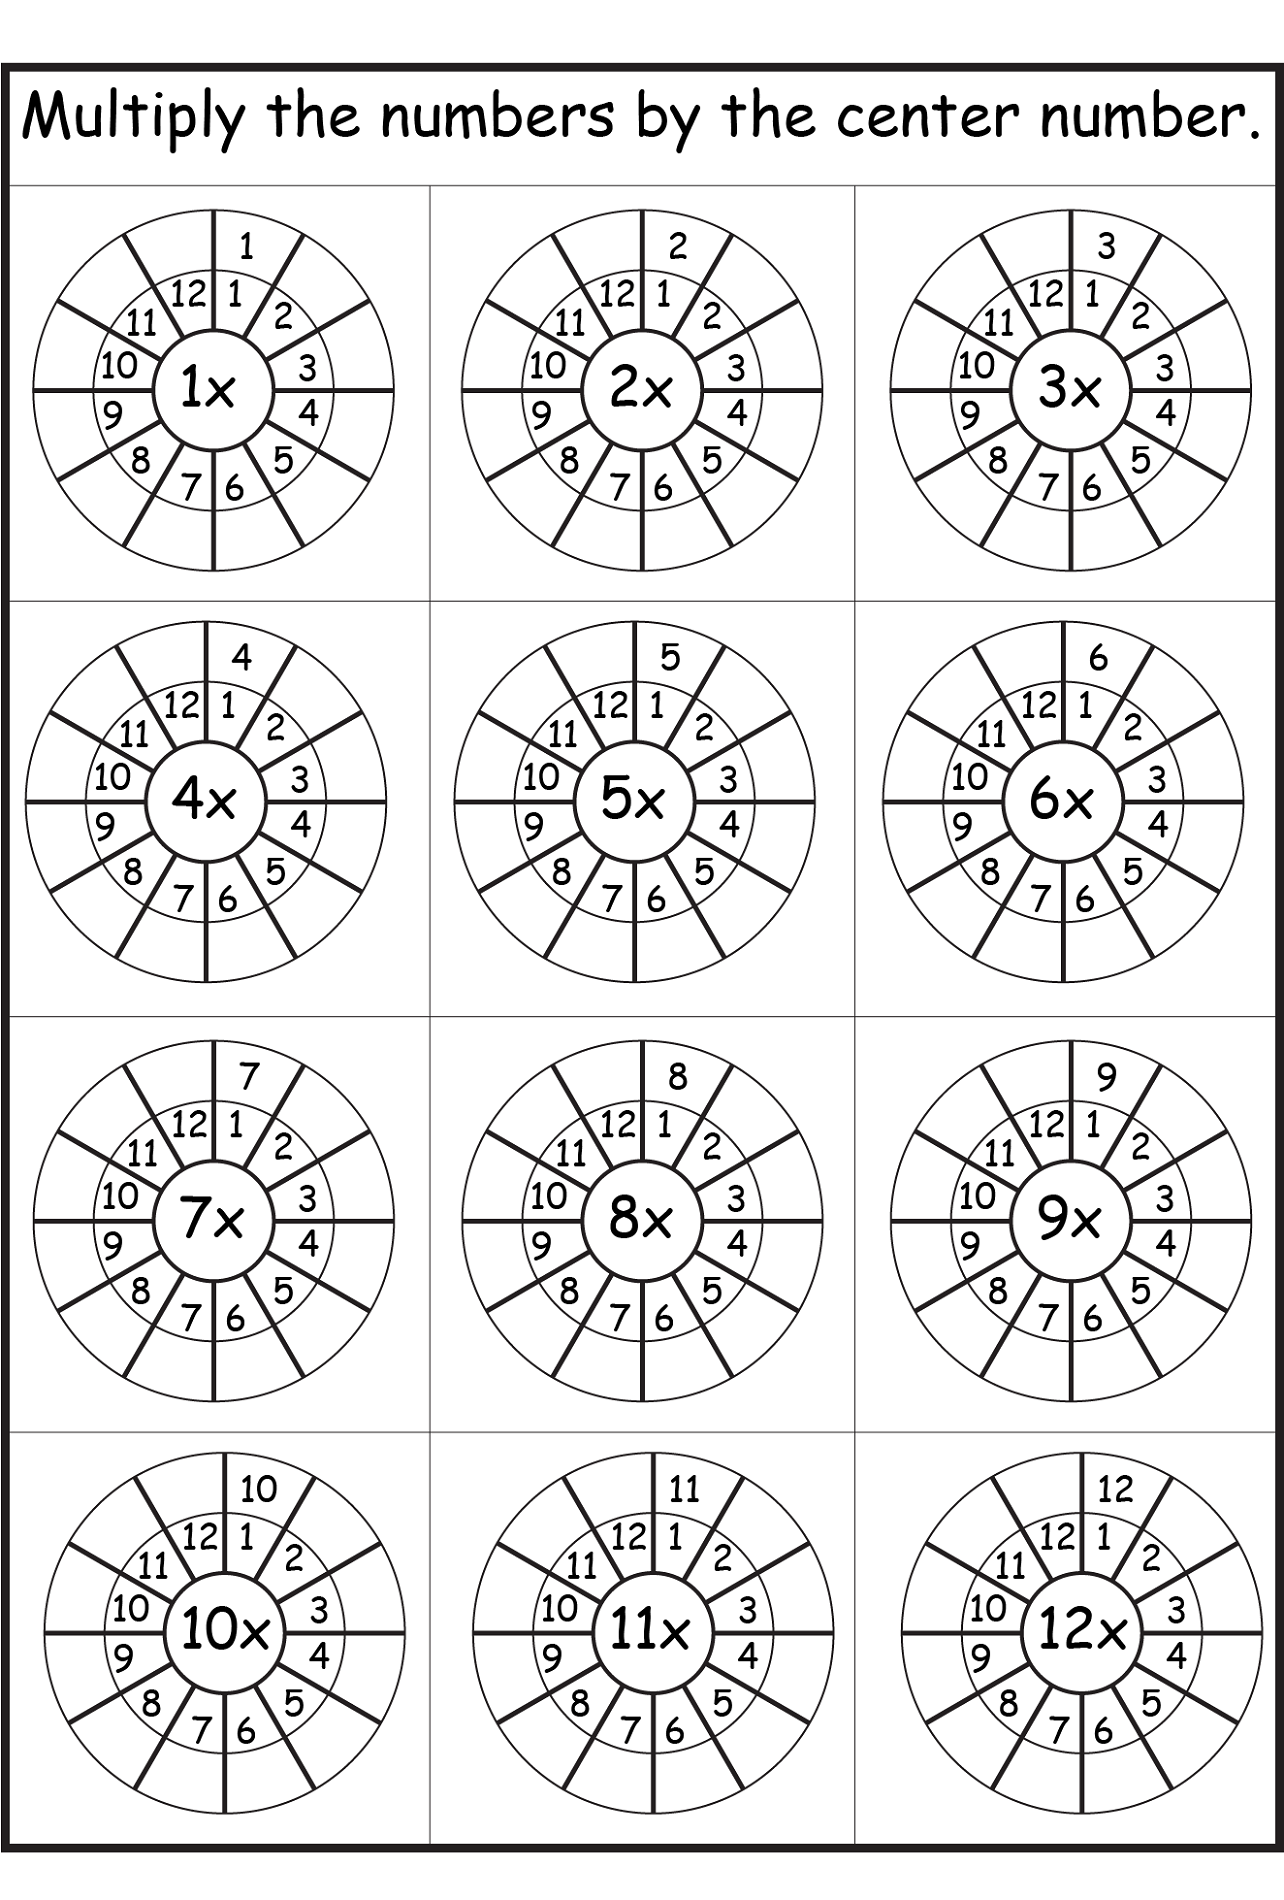 1 times tables worksheet to learn